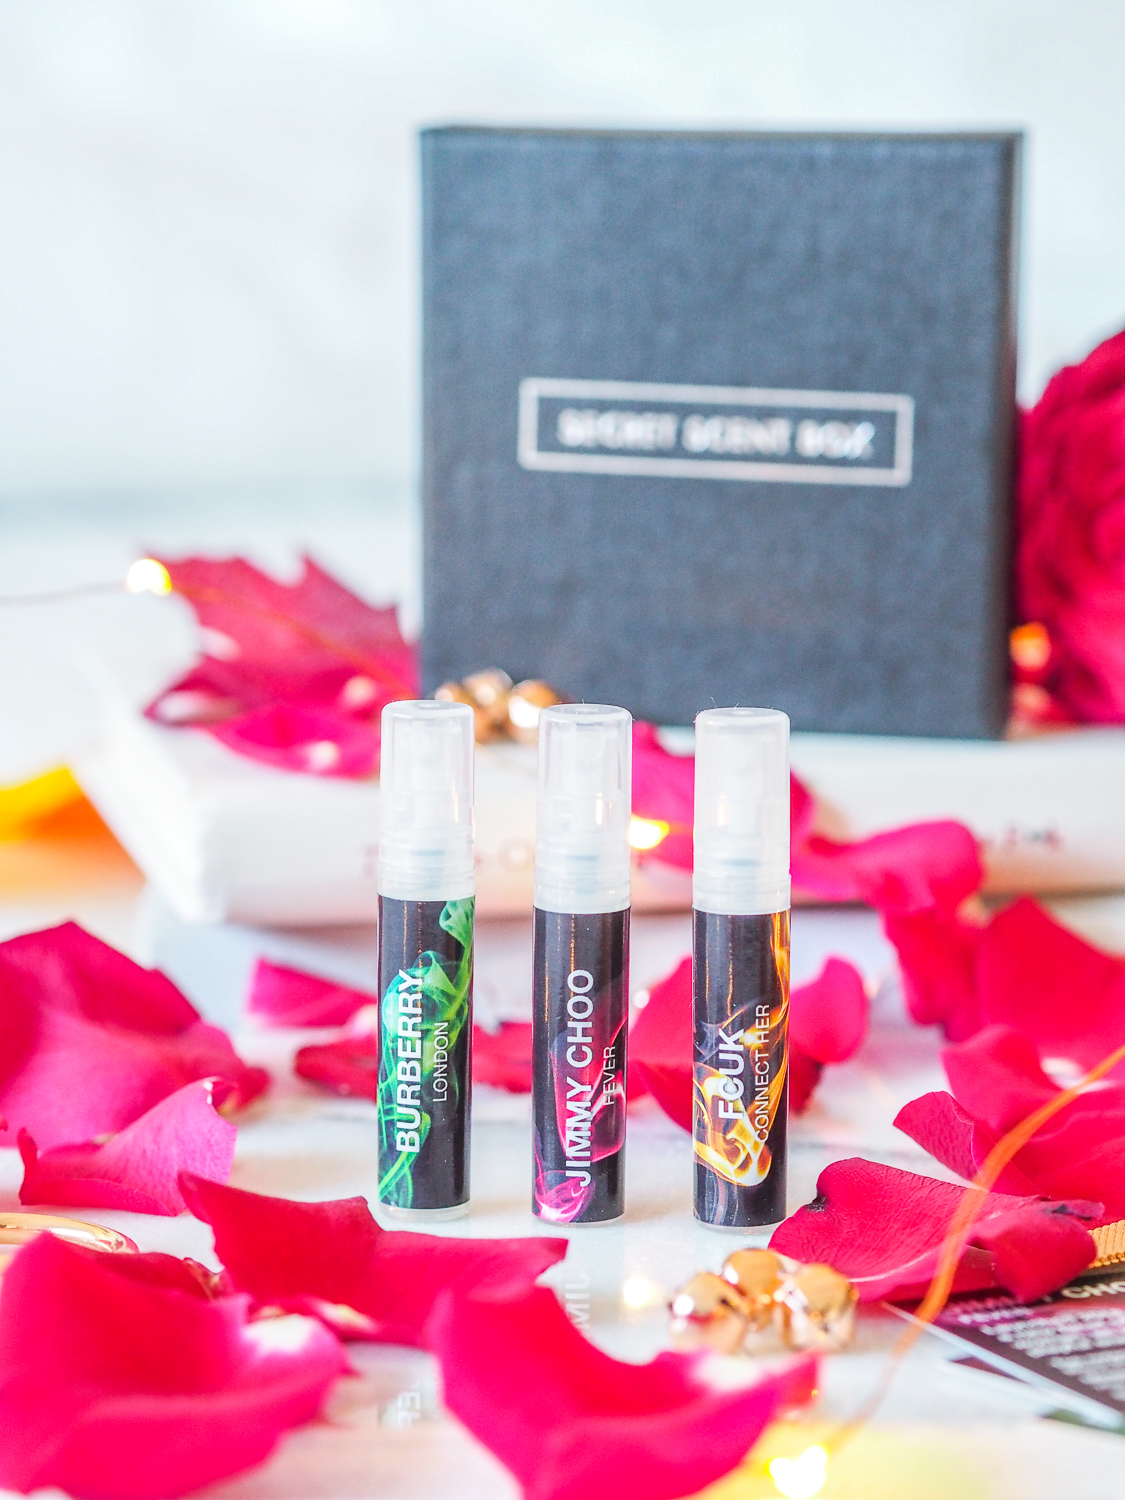 A new fragrance subscription box: The Secret Scent Box | lucy-cole